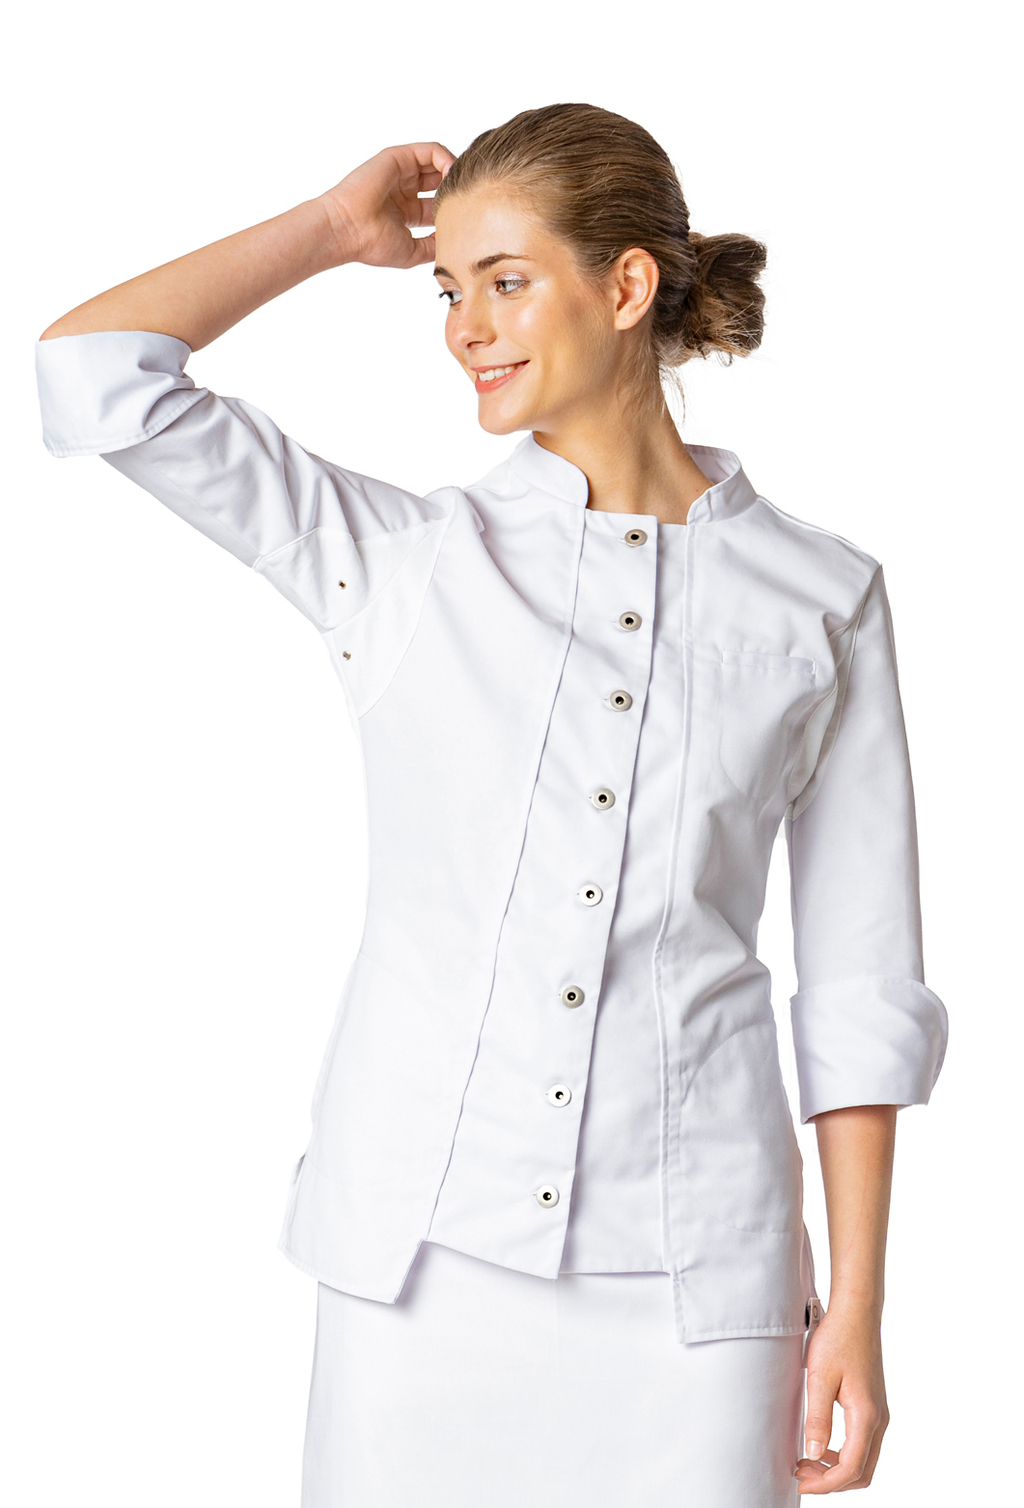 WOMEN'S CHEF JACKET RECYCLED AND ORGANIC FABRIC